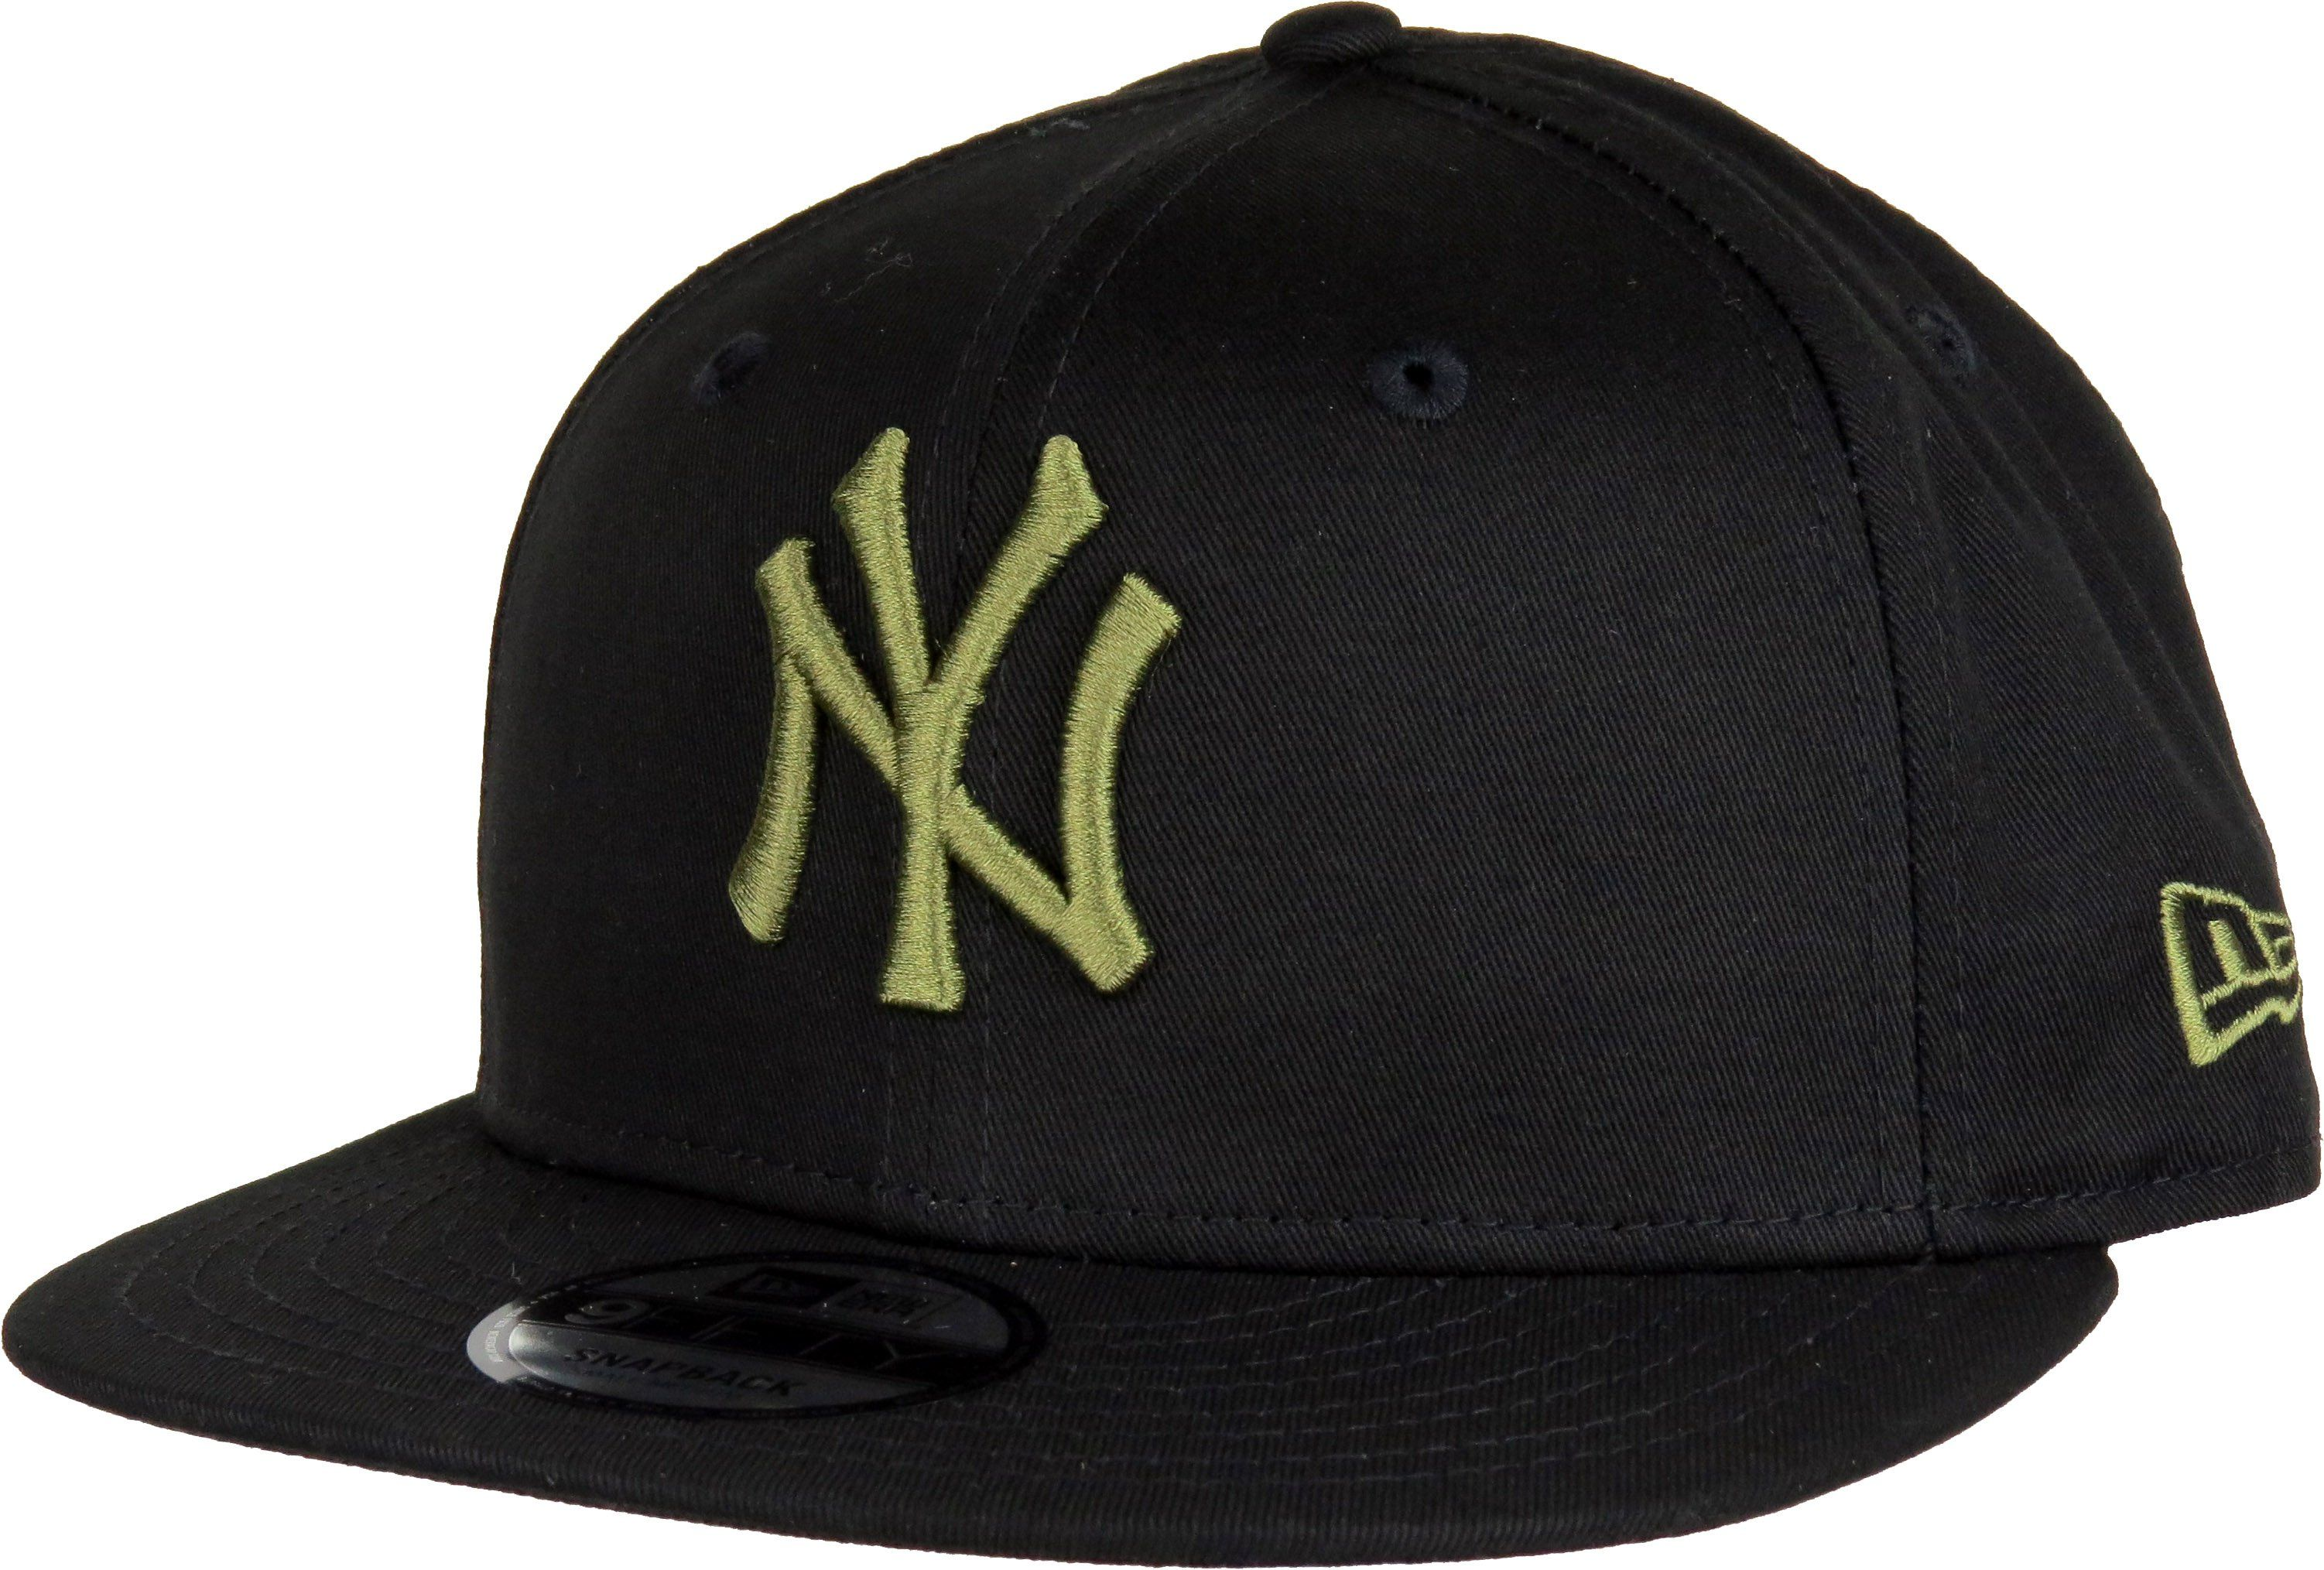 New Era 9Fifty League Essential Snapback Baseball Cap. Black with the Khaki  NY front logo 975ab8898b89